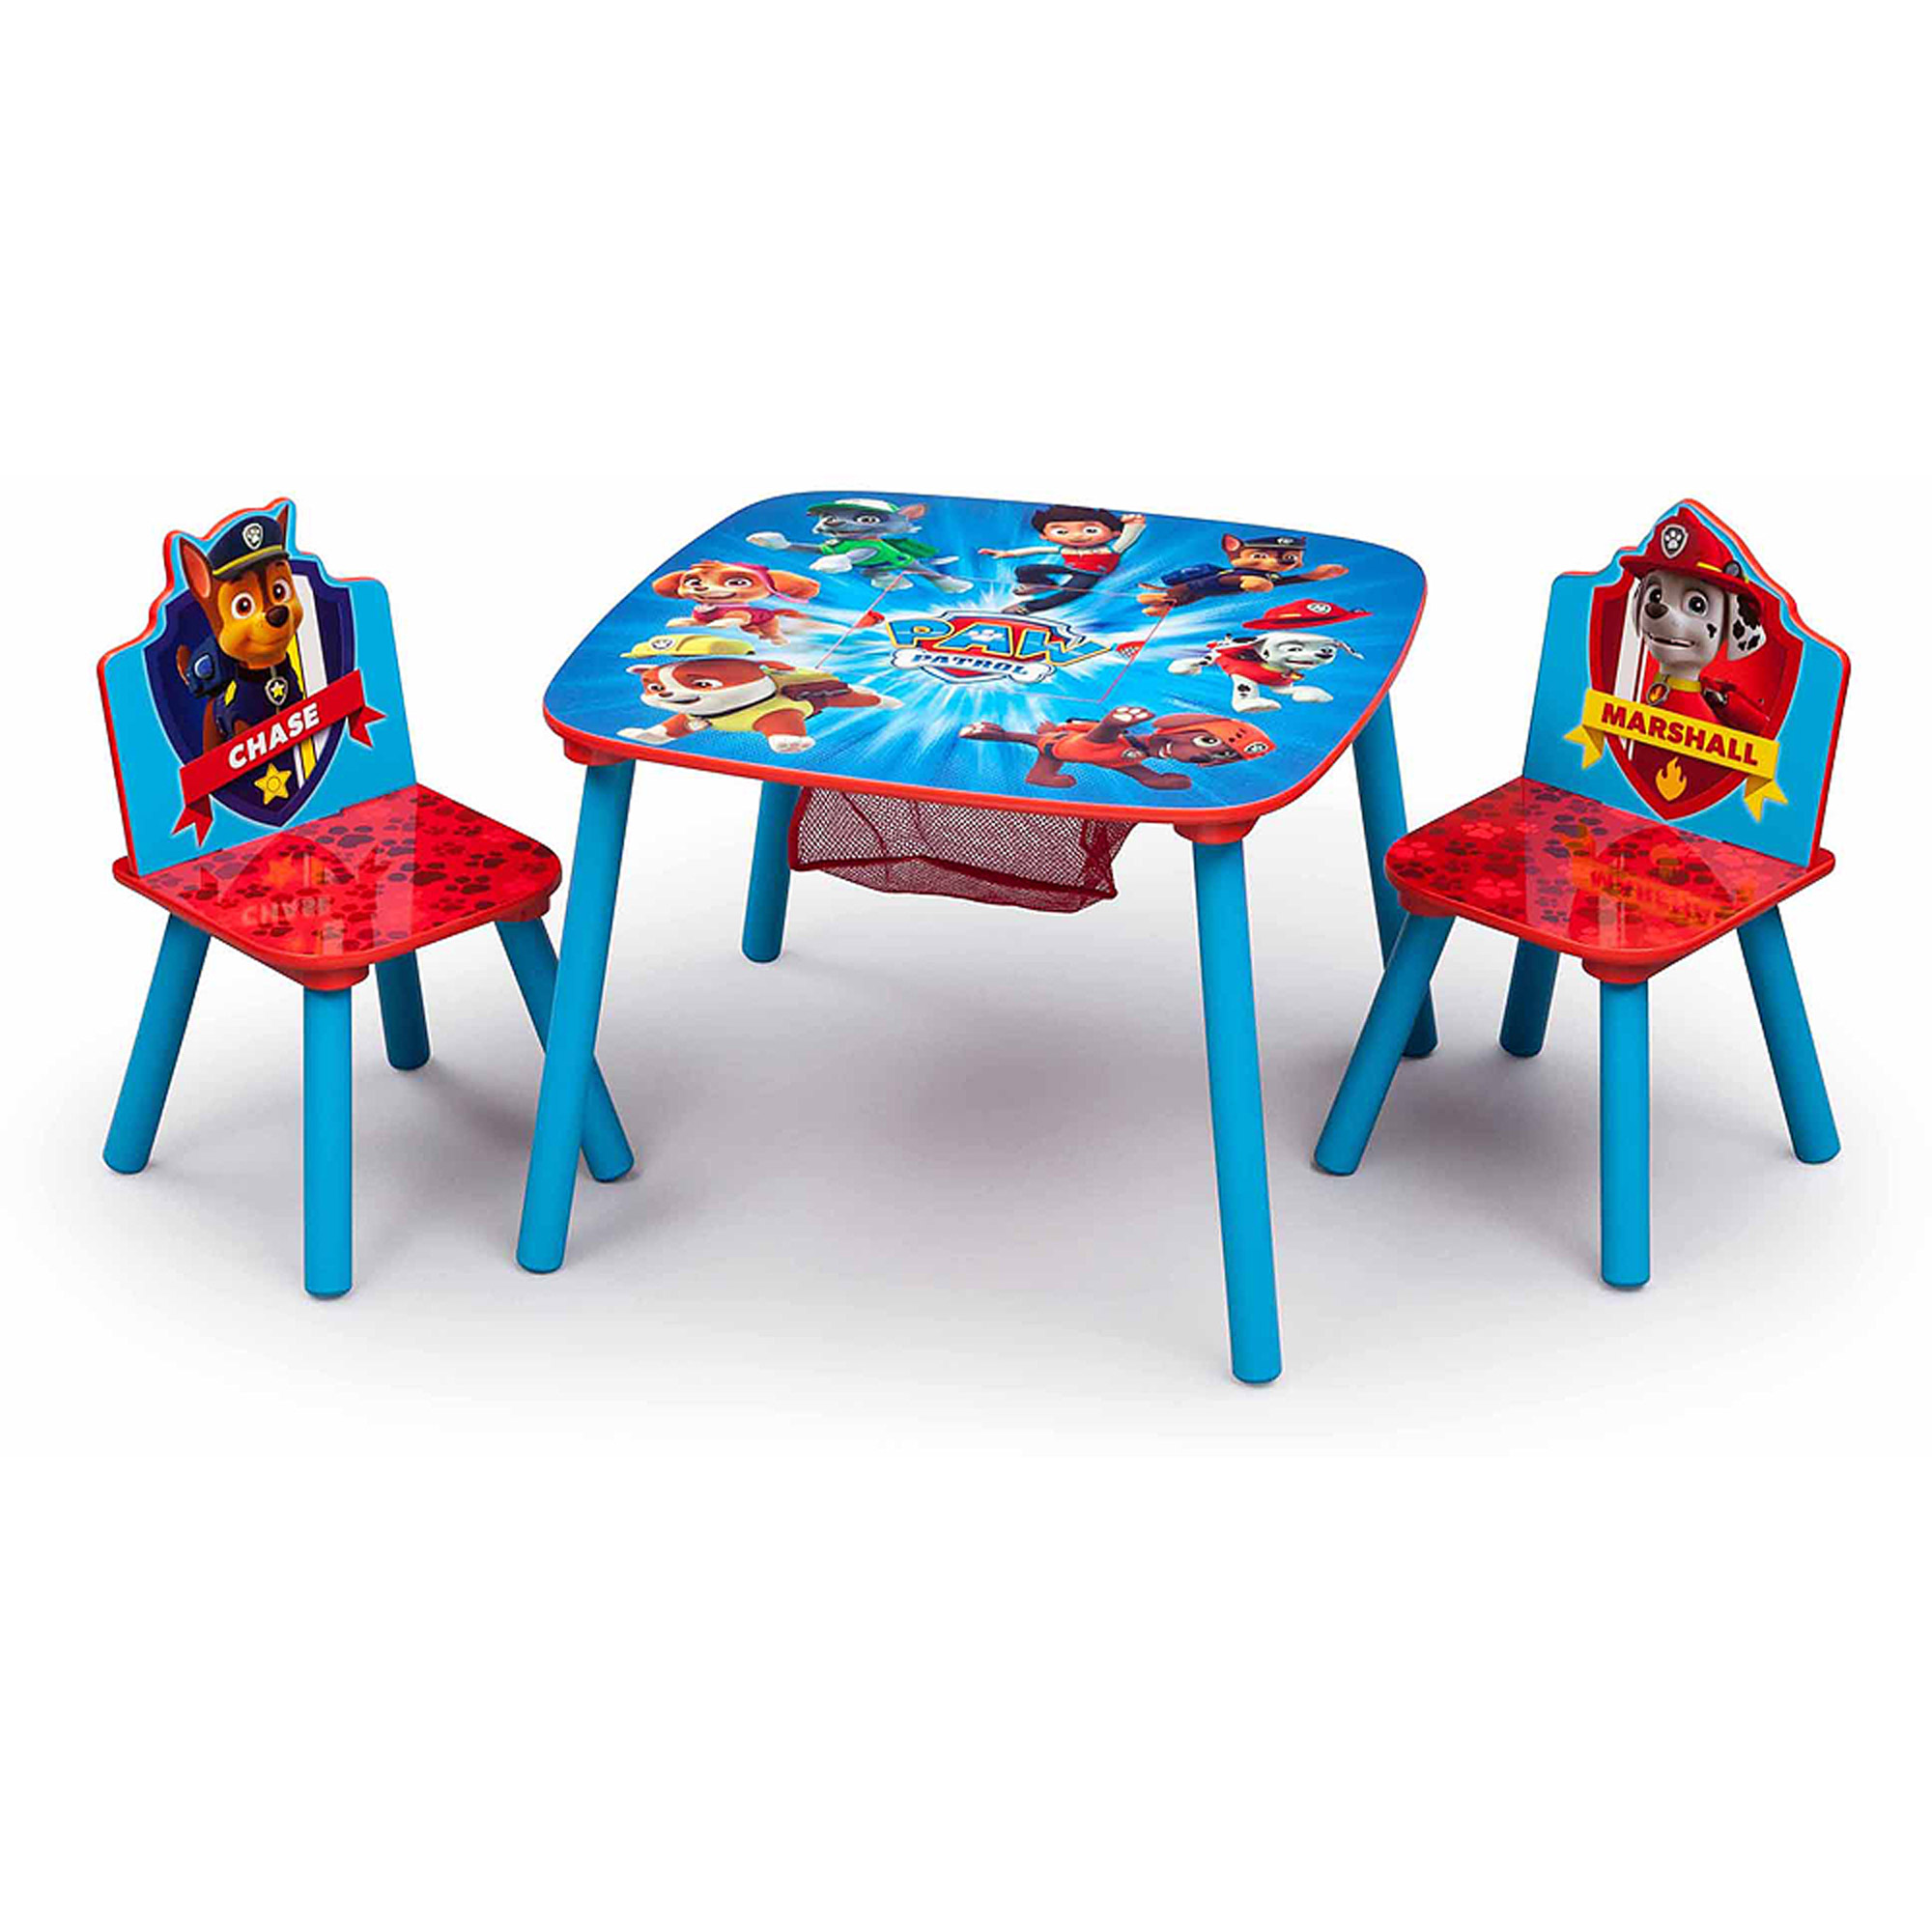 sc 1 st  Walmart & Nickelodeon Dora the Explorer Storage Table and Chairs Set - Walmart.com